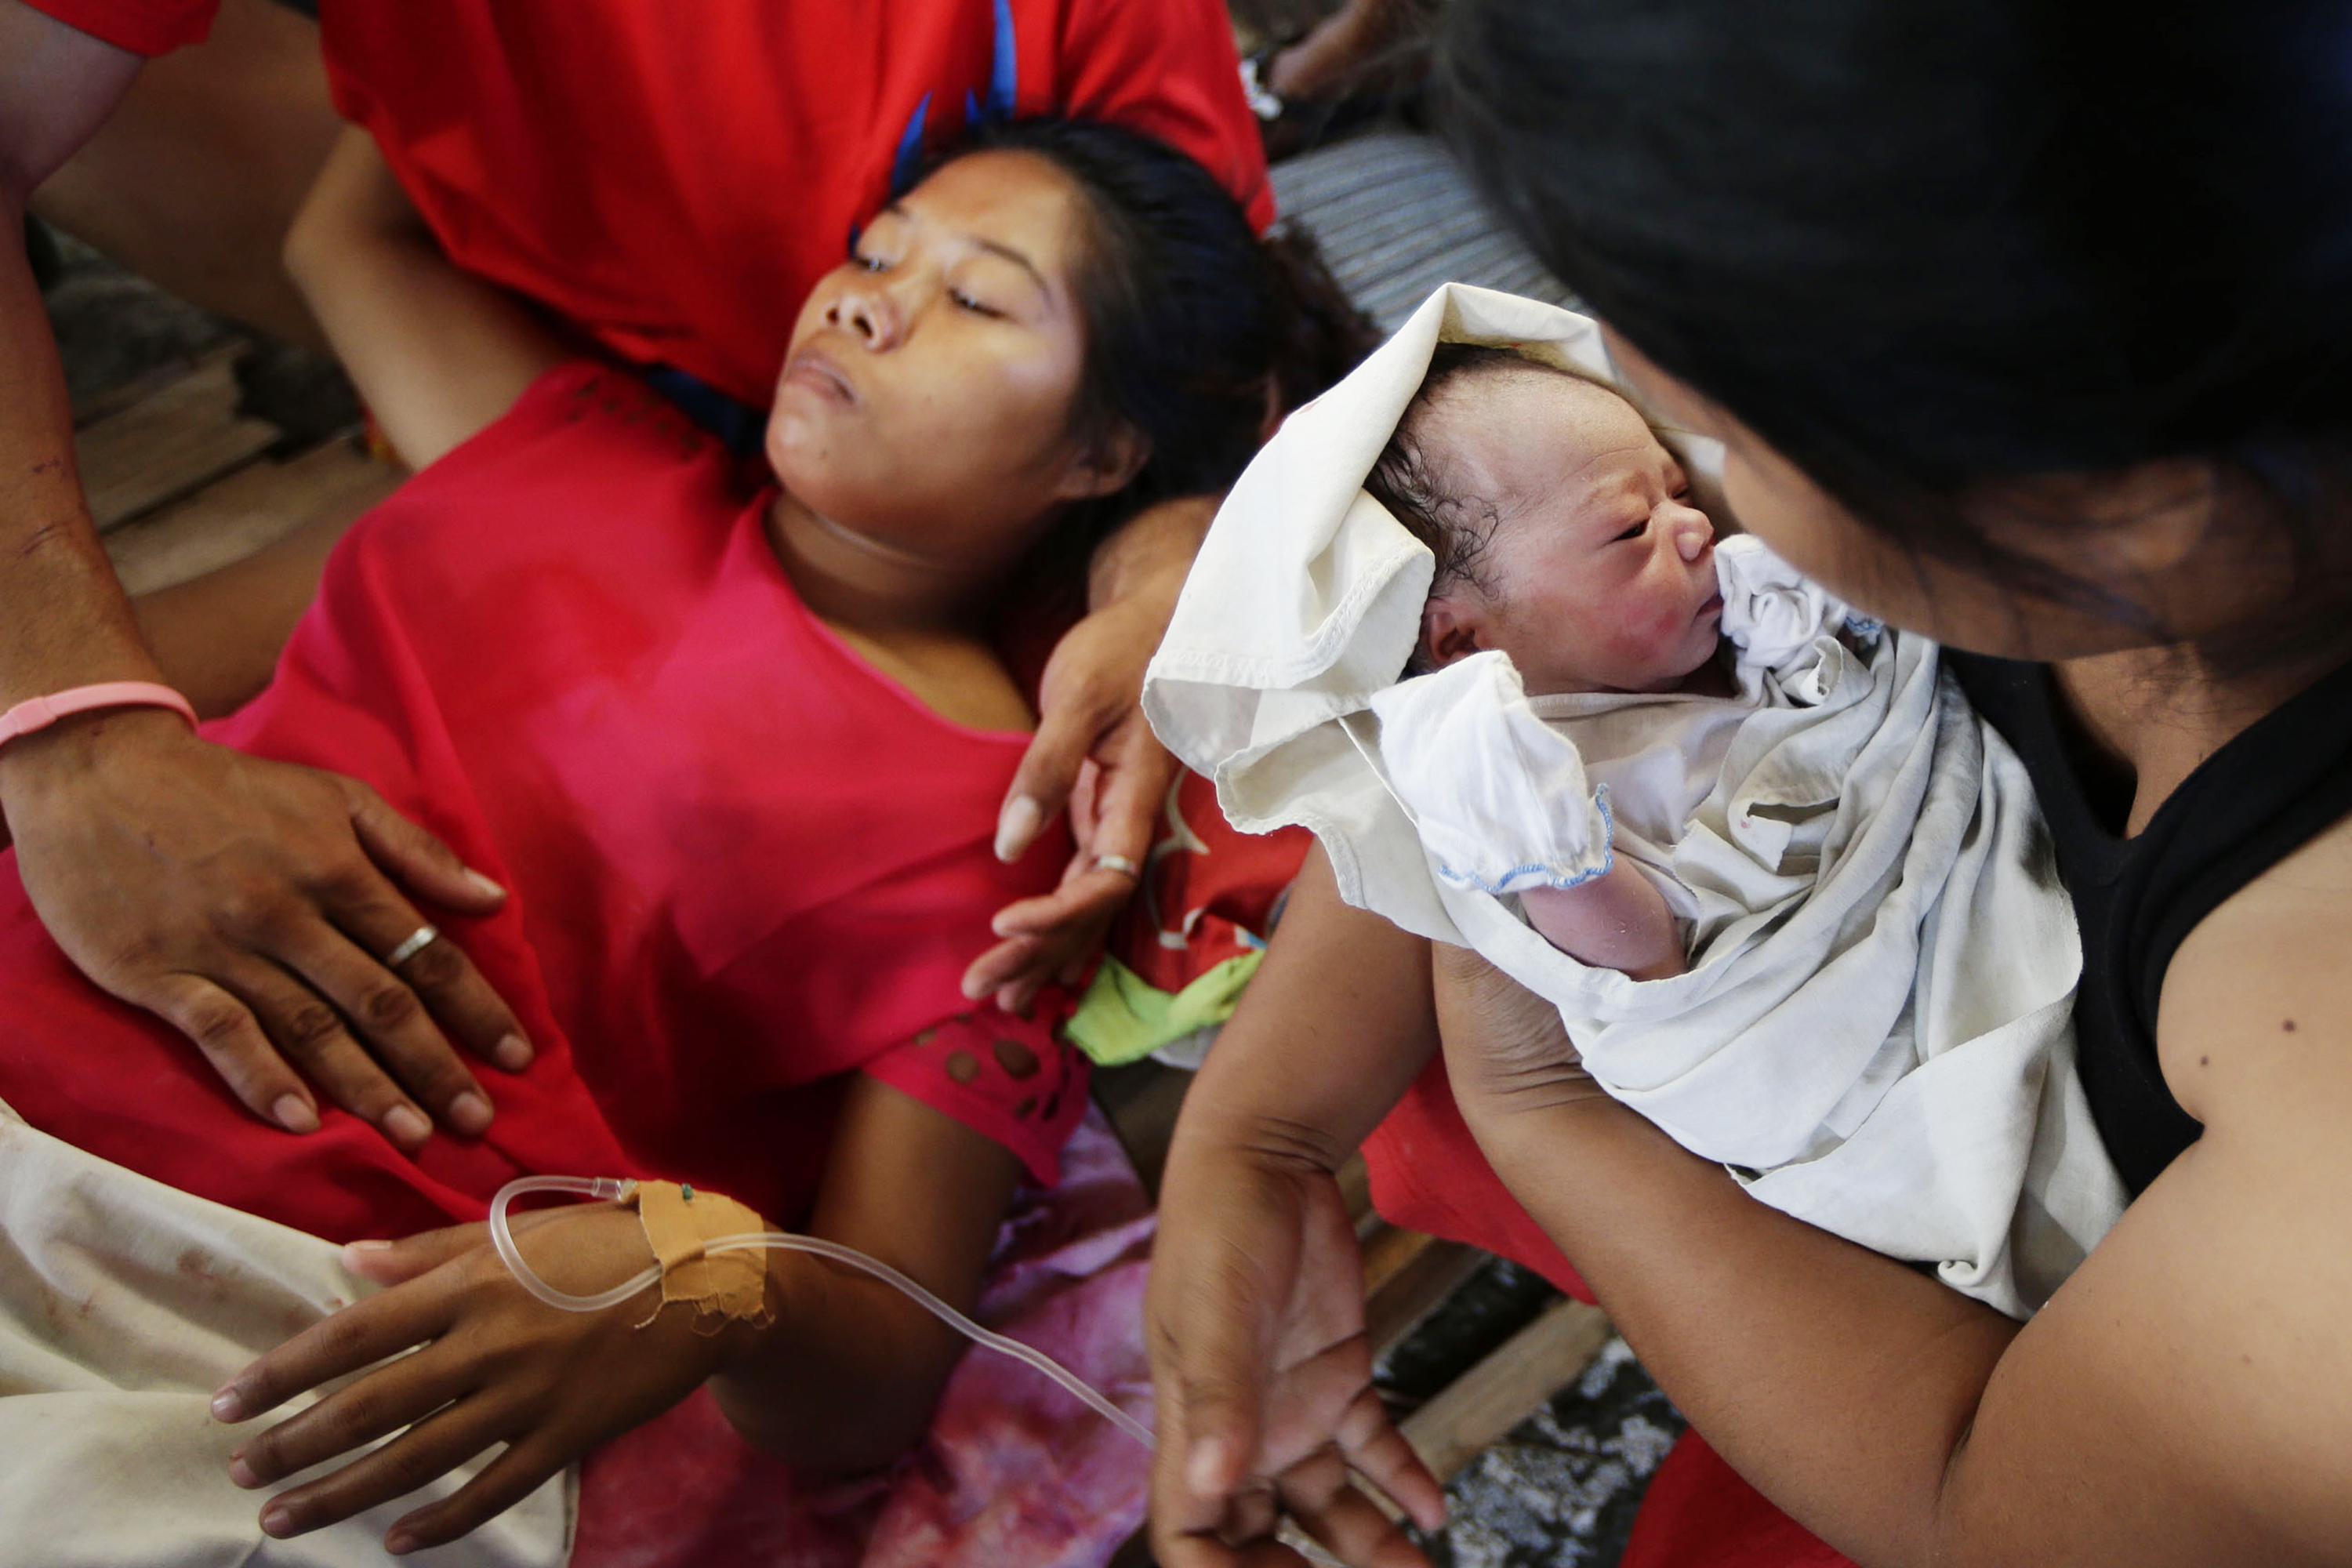 New-born baby Bea Joy is held as mother Emily Ortega, 21, rests after giving birth at an improvised clinic at Tacloban airport. Bea Joy was named after her grandmother Beatrice, who was missing following the typhoon.